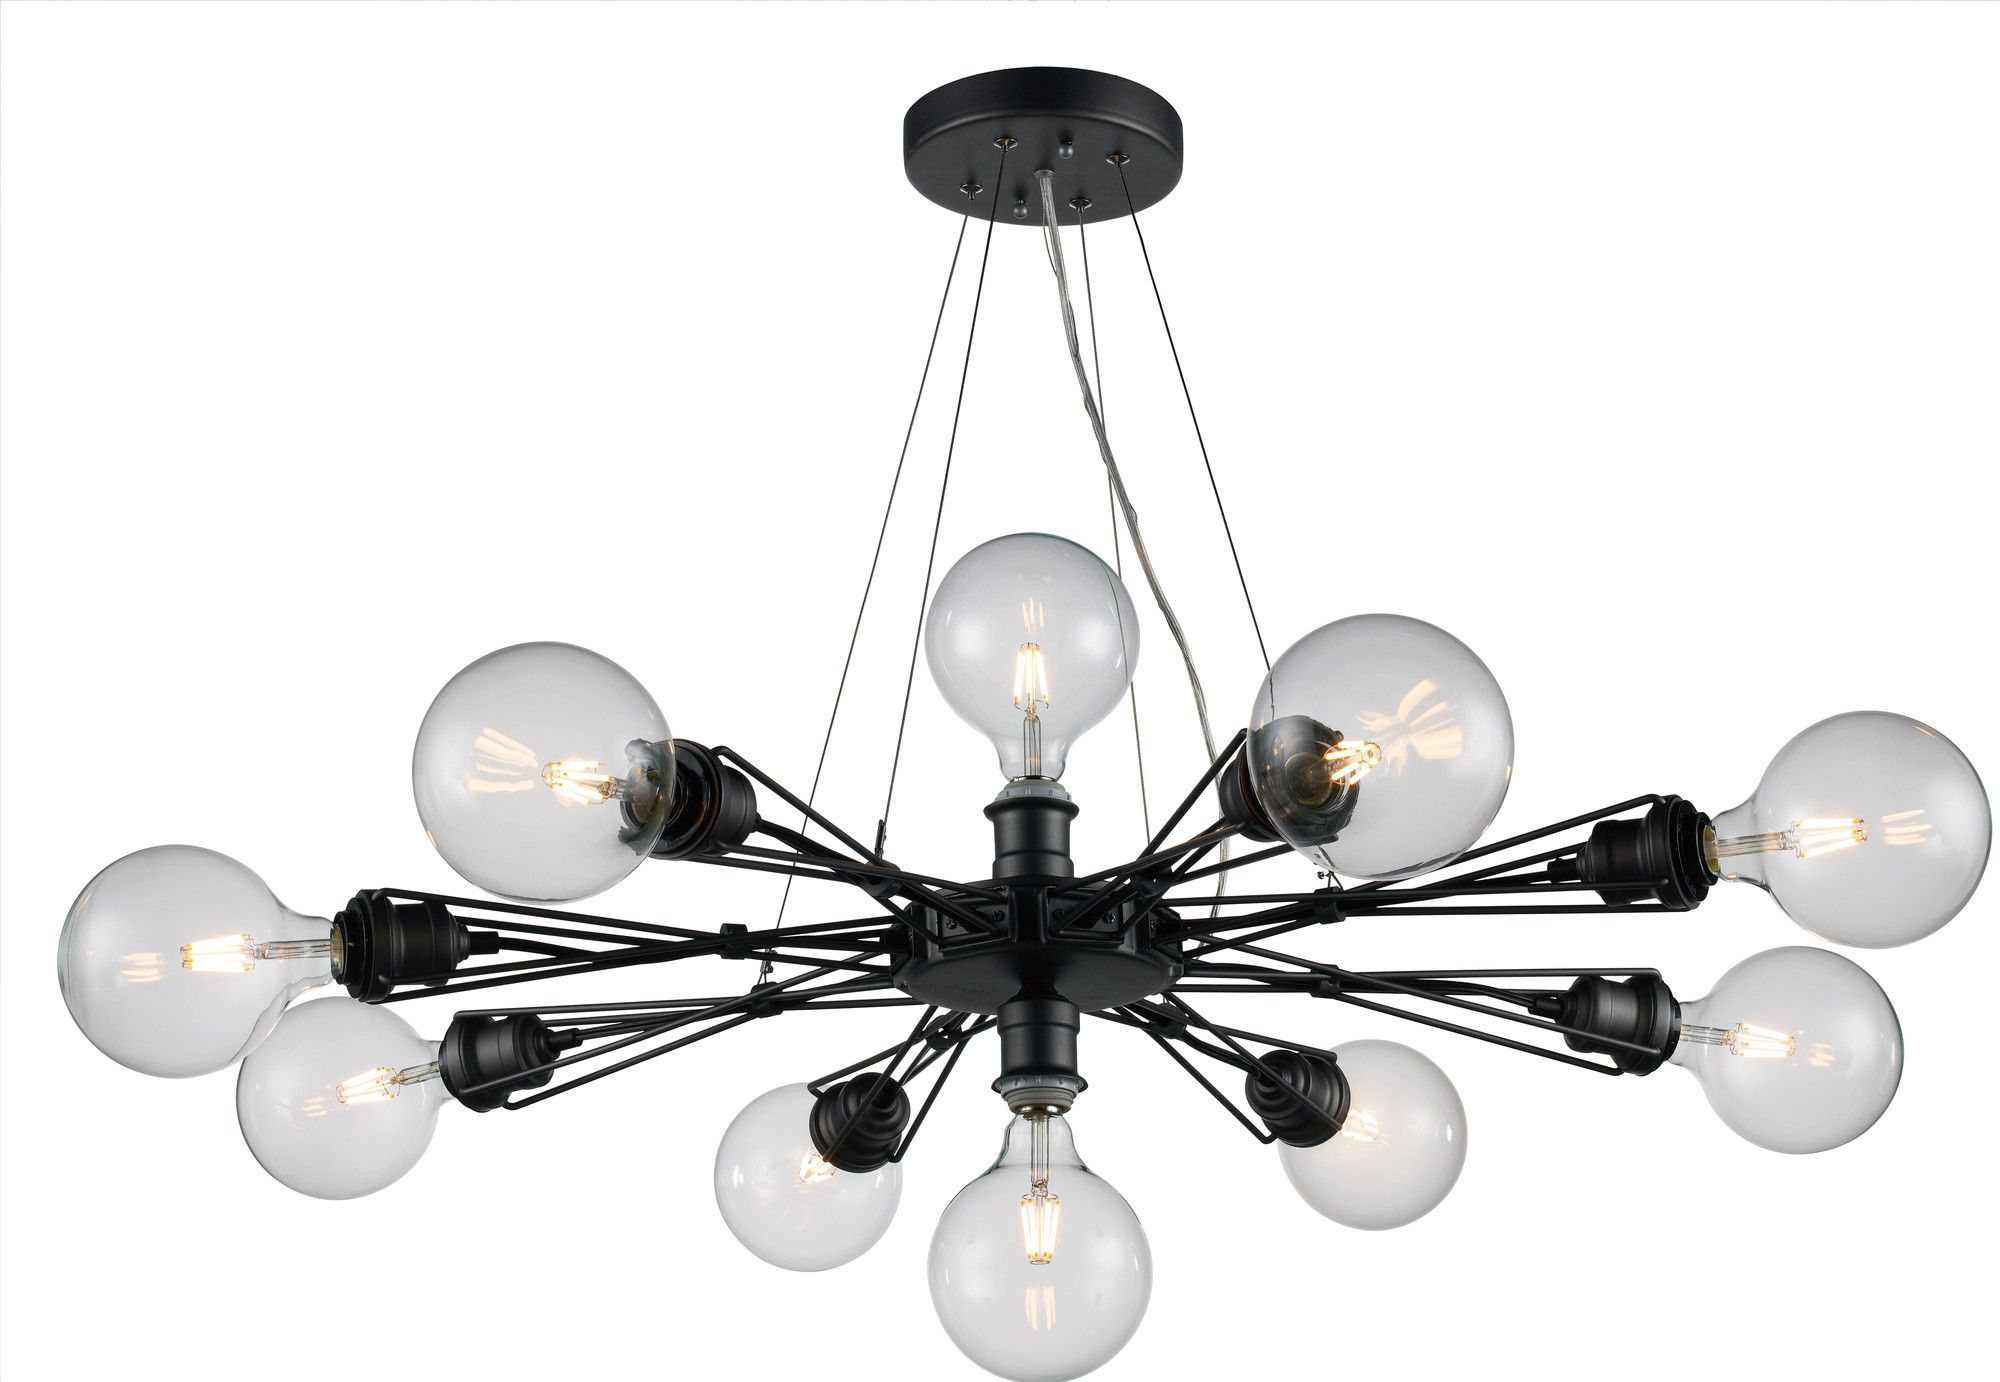 Solon 10 Light Cluster Pendant | Products | Lighting Intended For Bacchus 12 Light Sputnik Chandeliers (View 23 of 30)